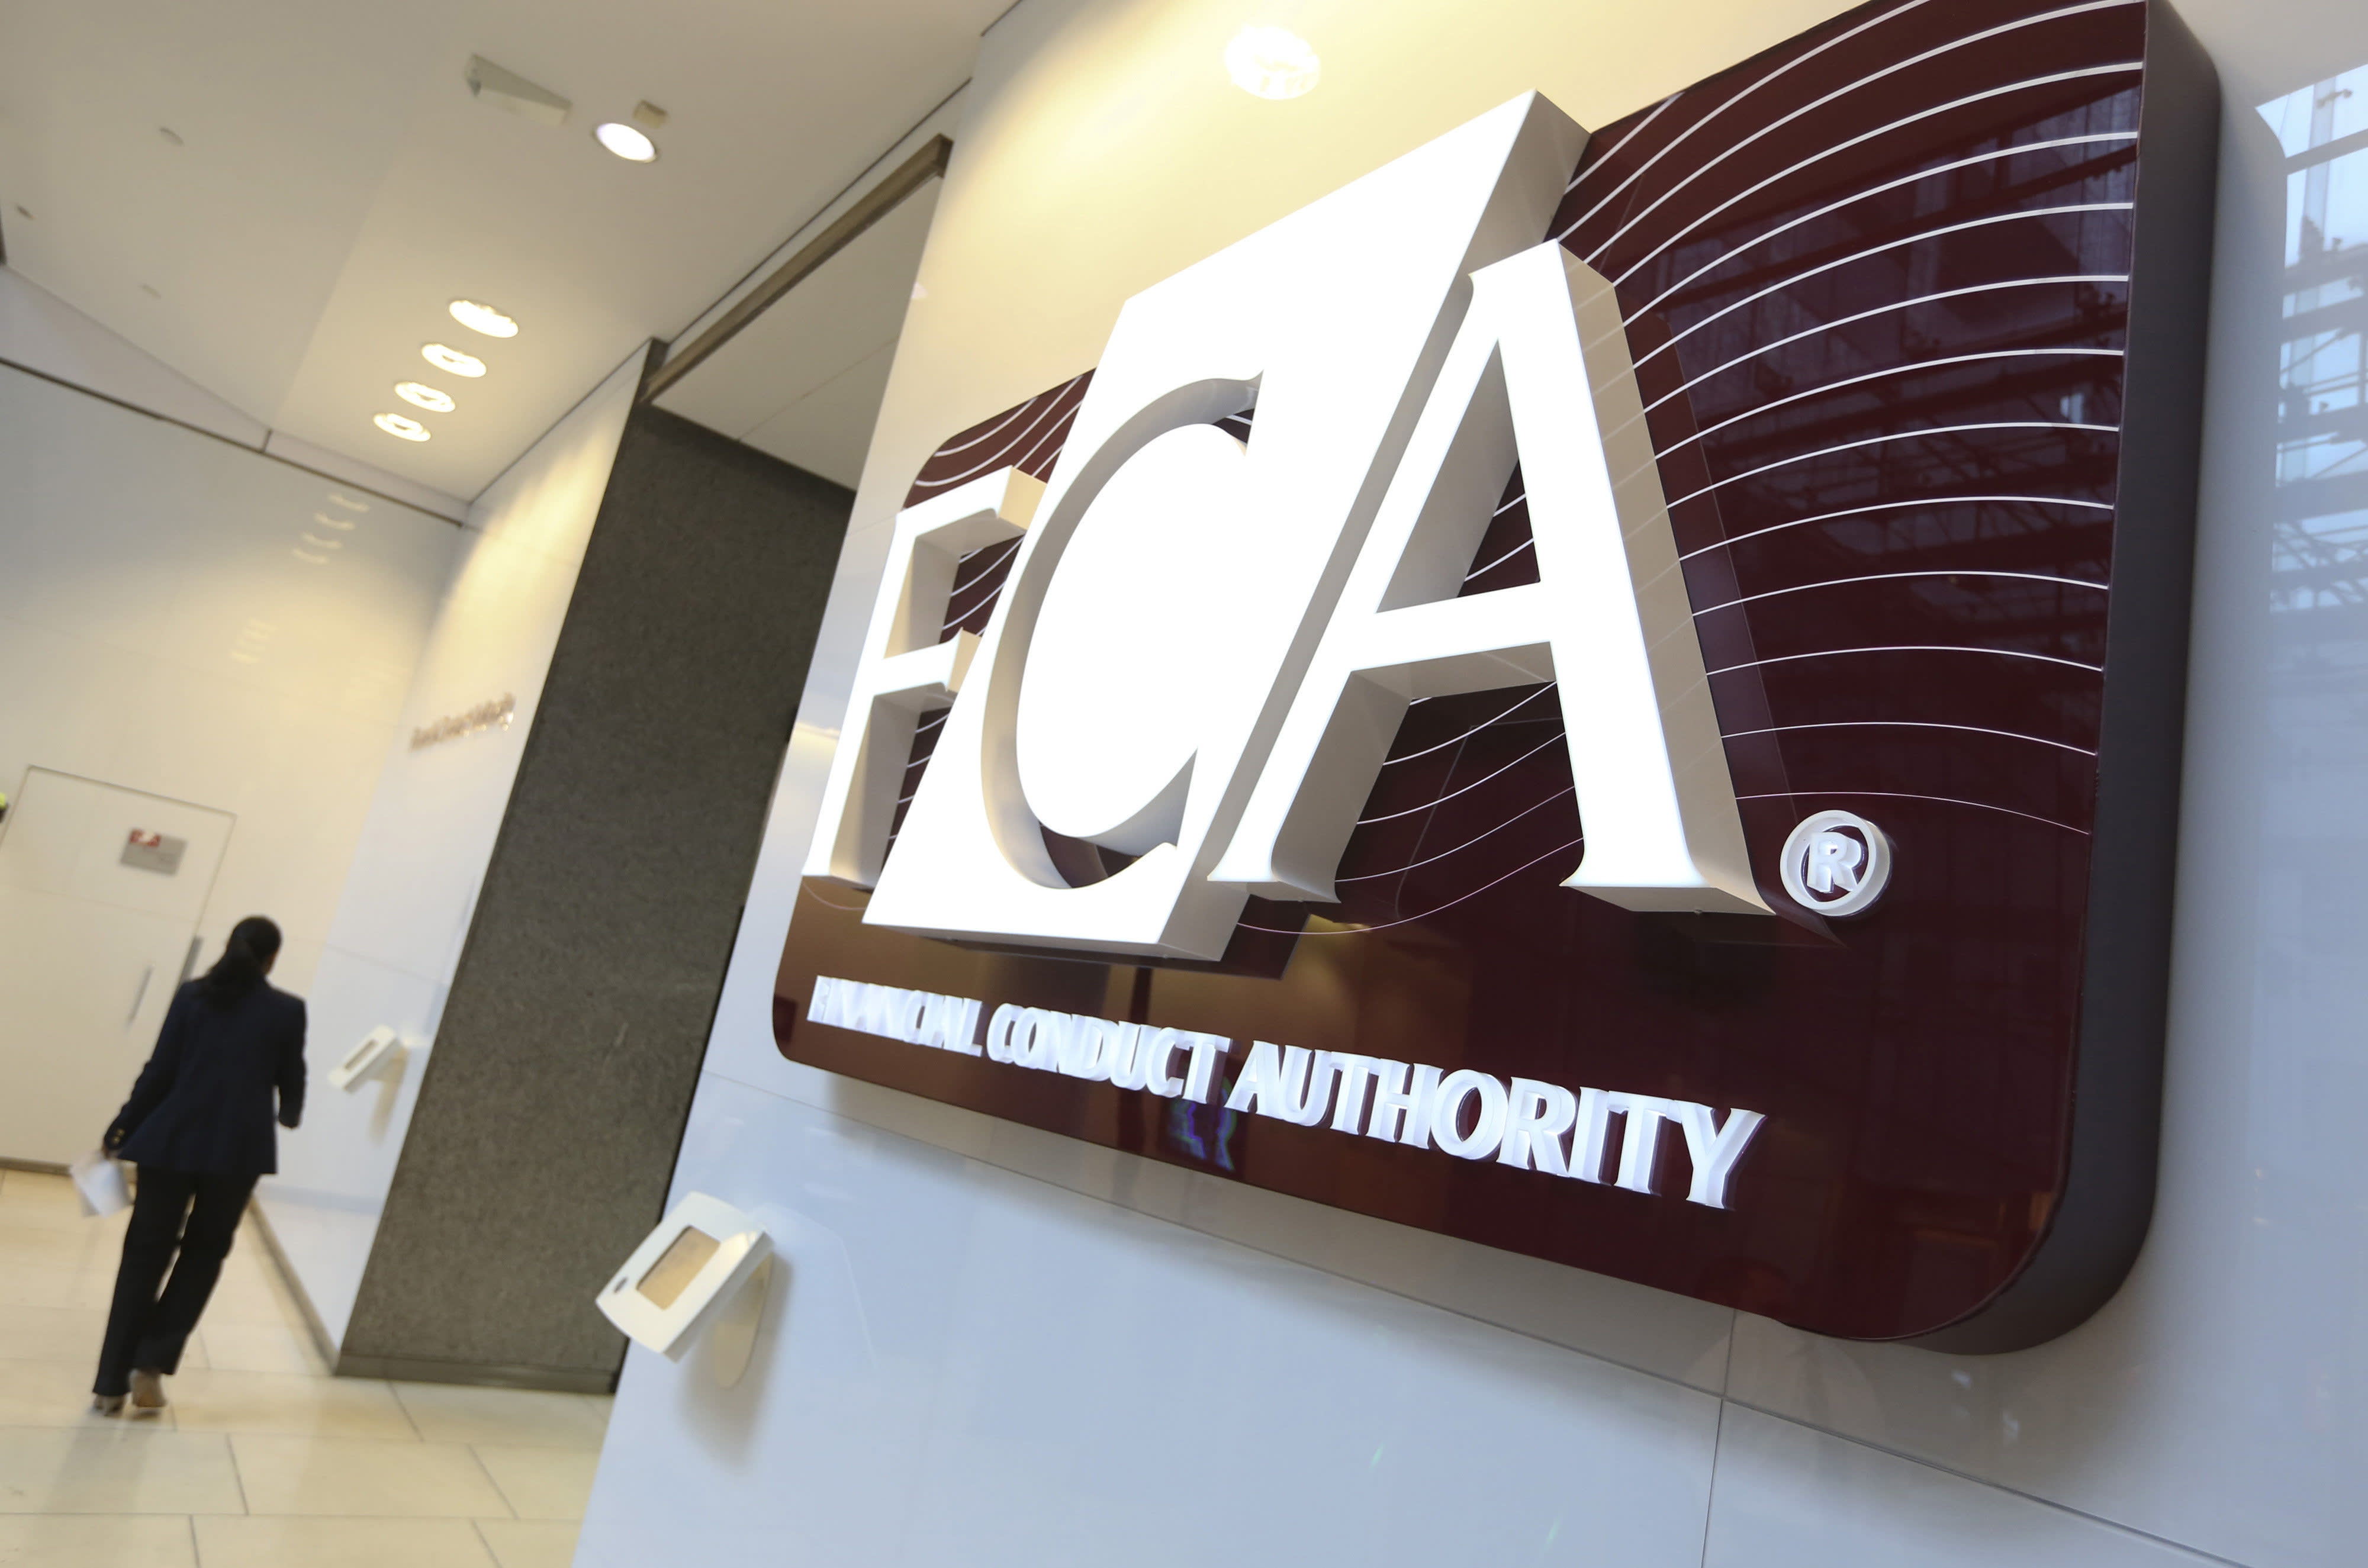 More than 1,800 DB advisers probed by FCA